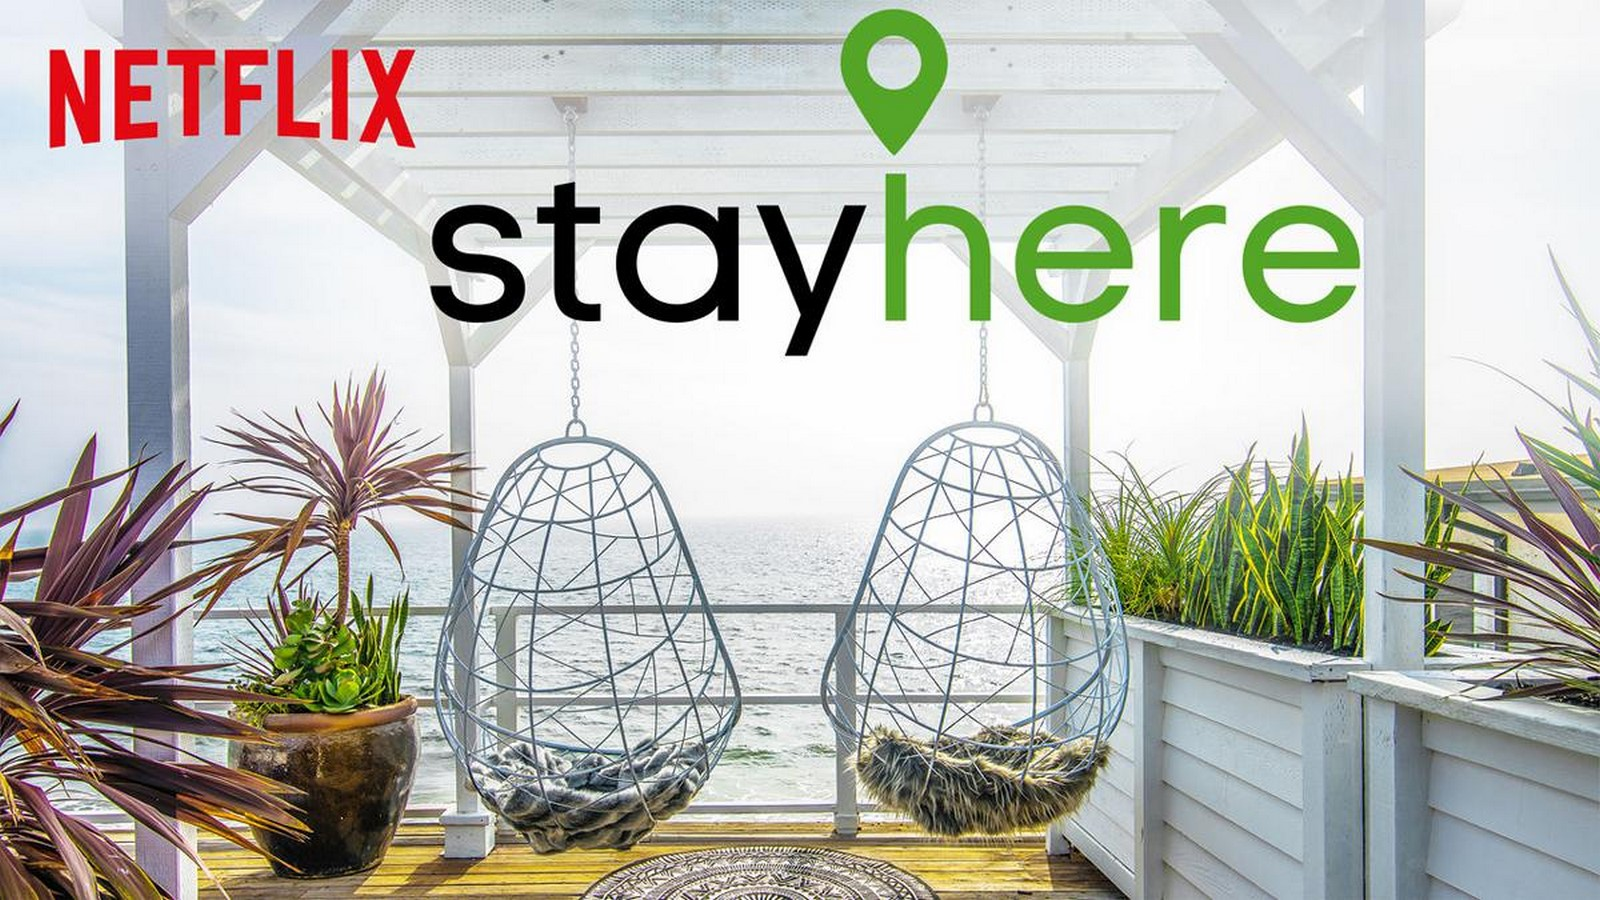 10 Architectural/Design shows on Netflix everyone should watch - Sheet5